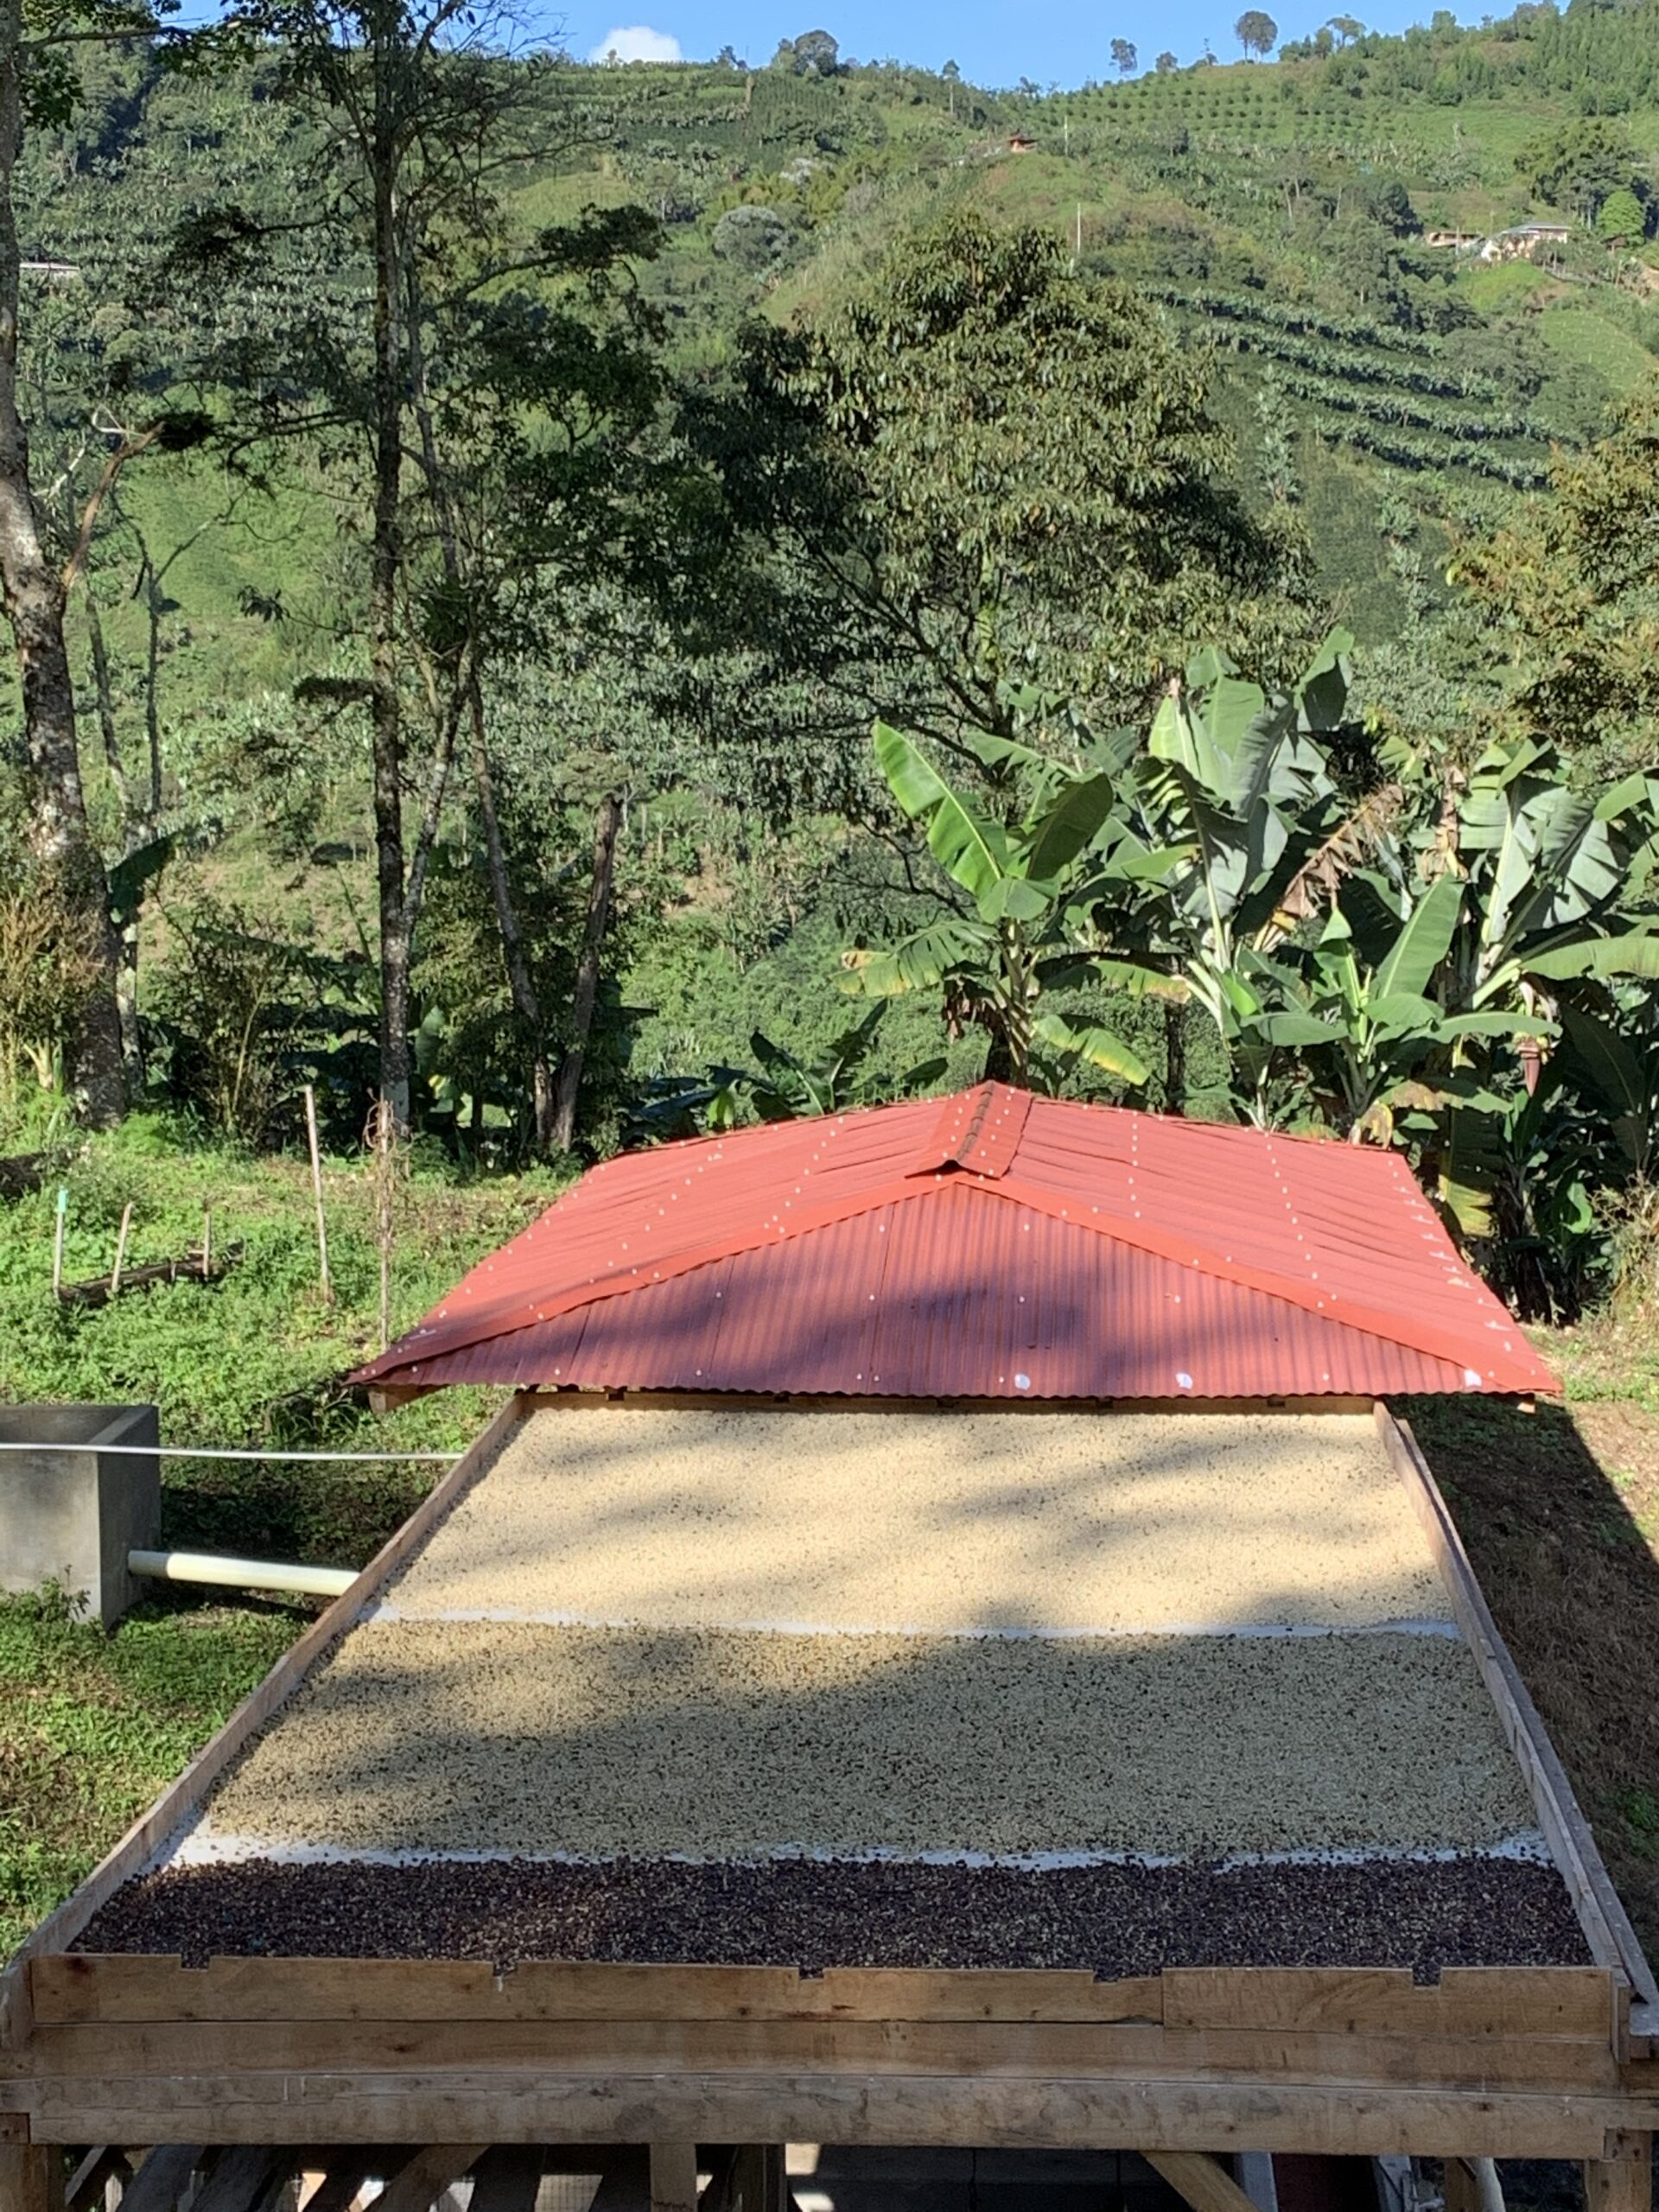 Coffee drying process on our property and coffee fields